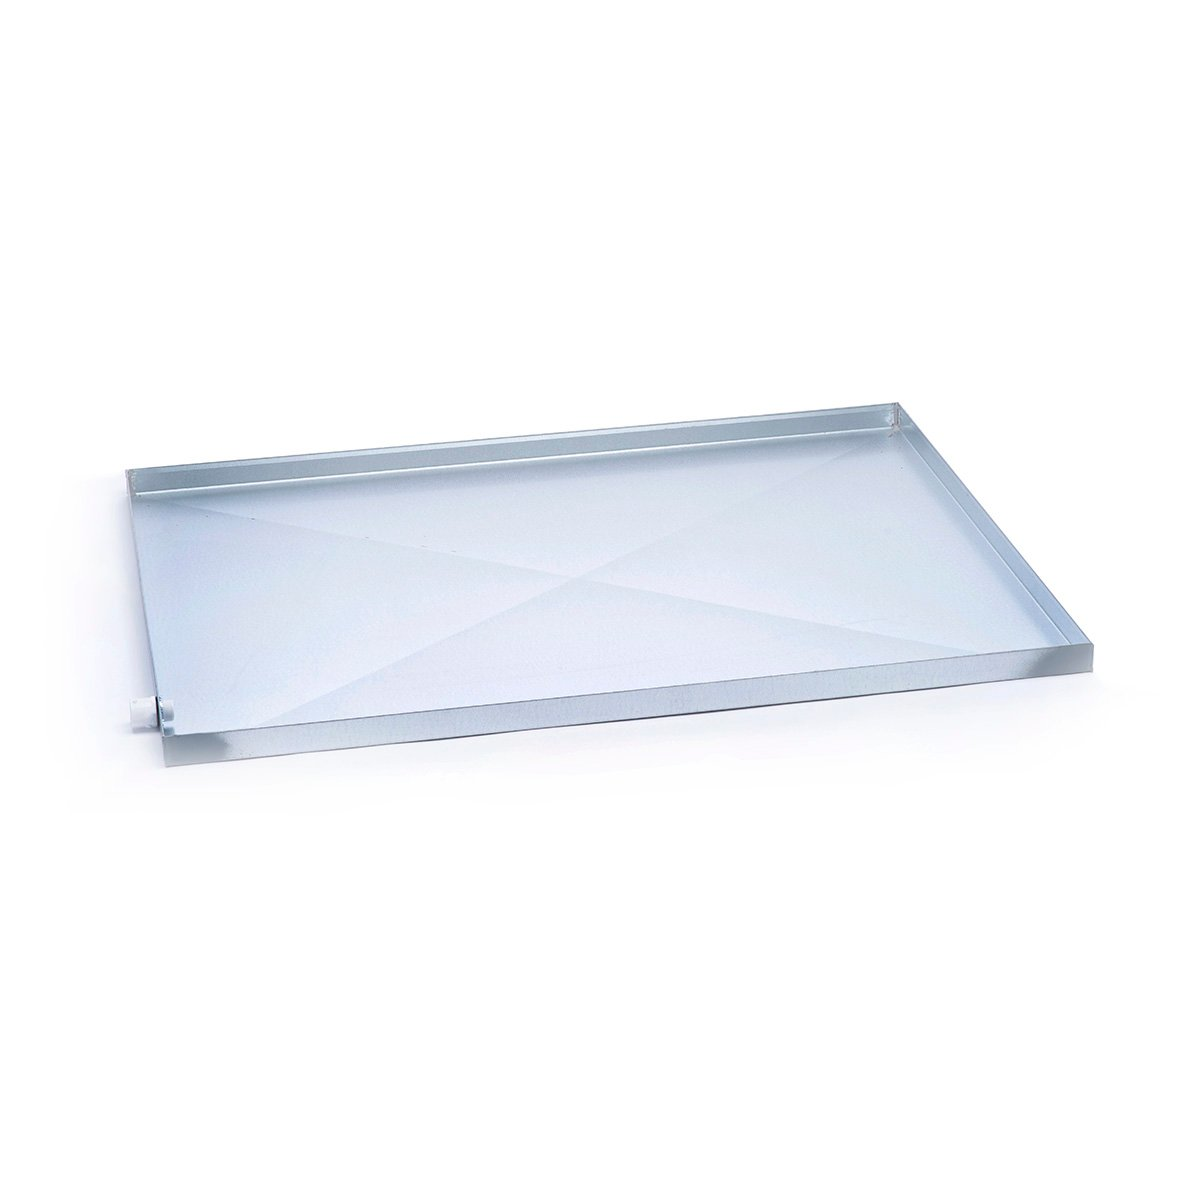 Secondary Drain Pan, M3642, 2-Module